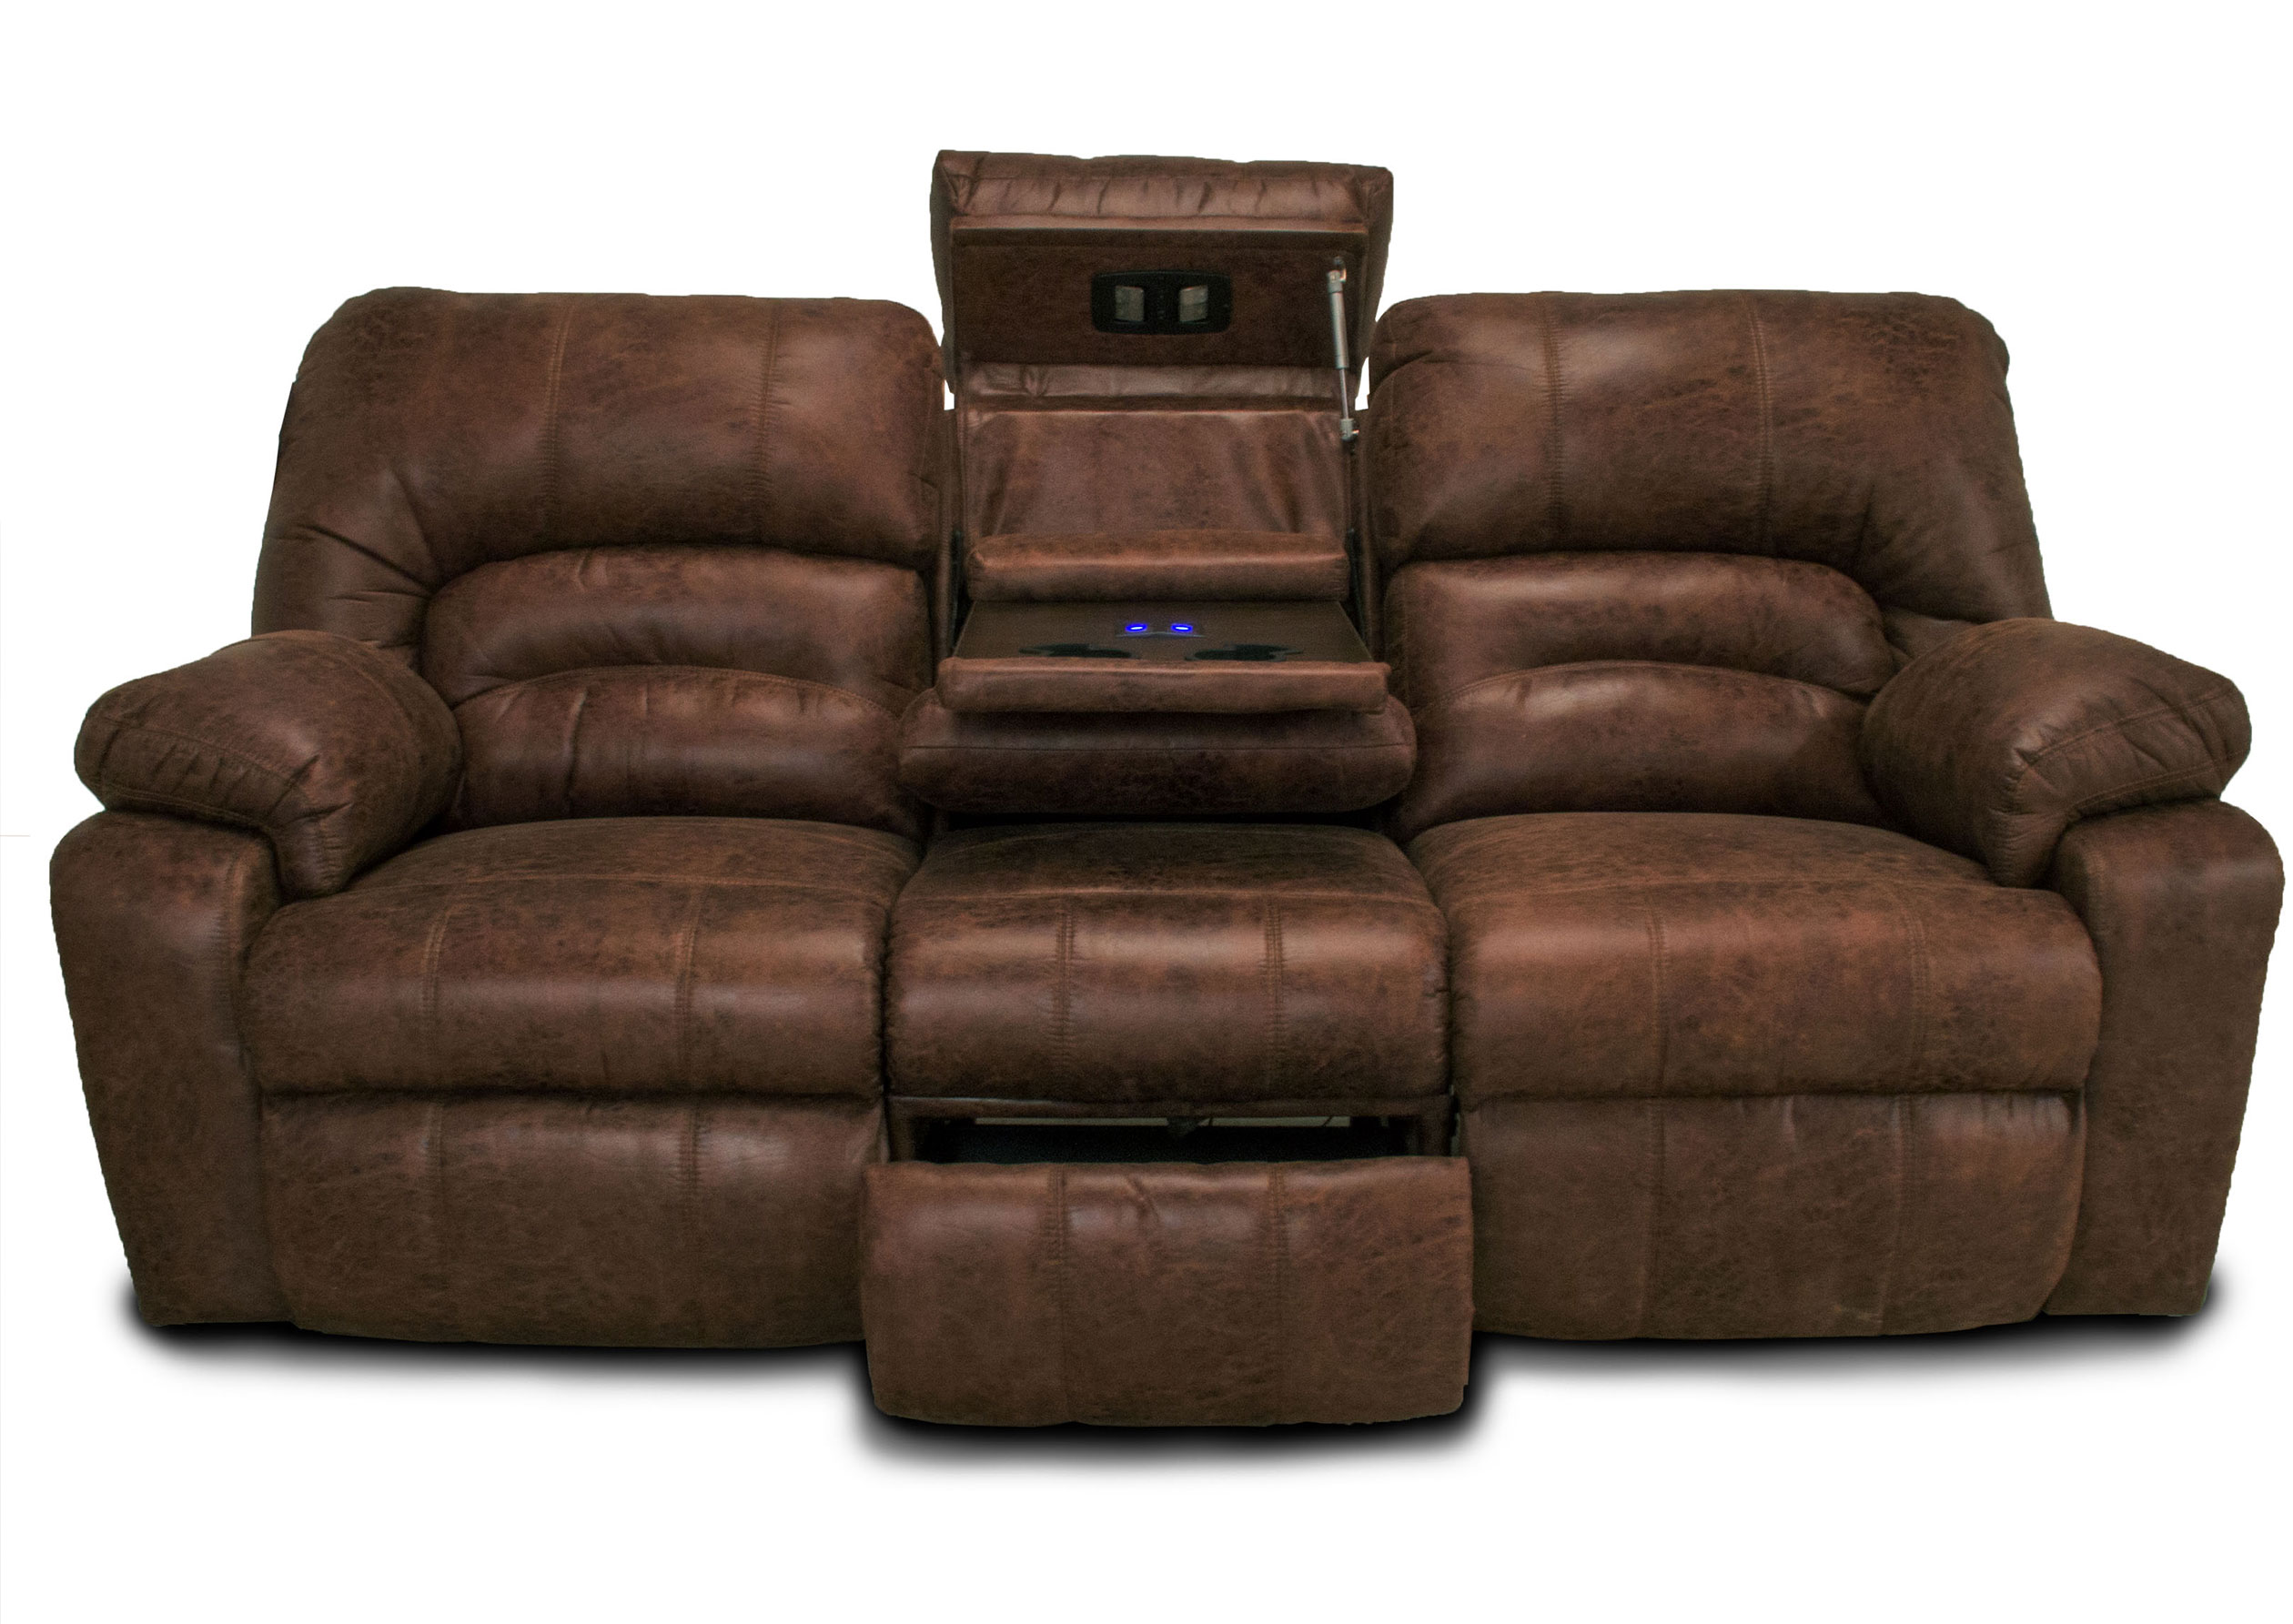 Fabulous Dakota Reclining Sofa W Drop Down Table Sofas And Sectionals Gmtry Best Dining Table And Chair Ideas Images Gmtryco